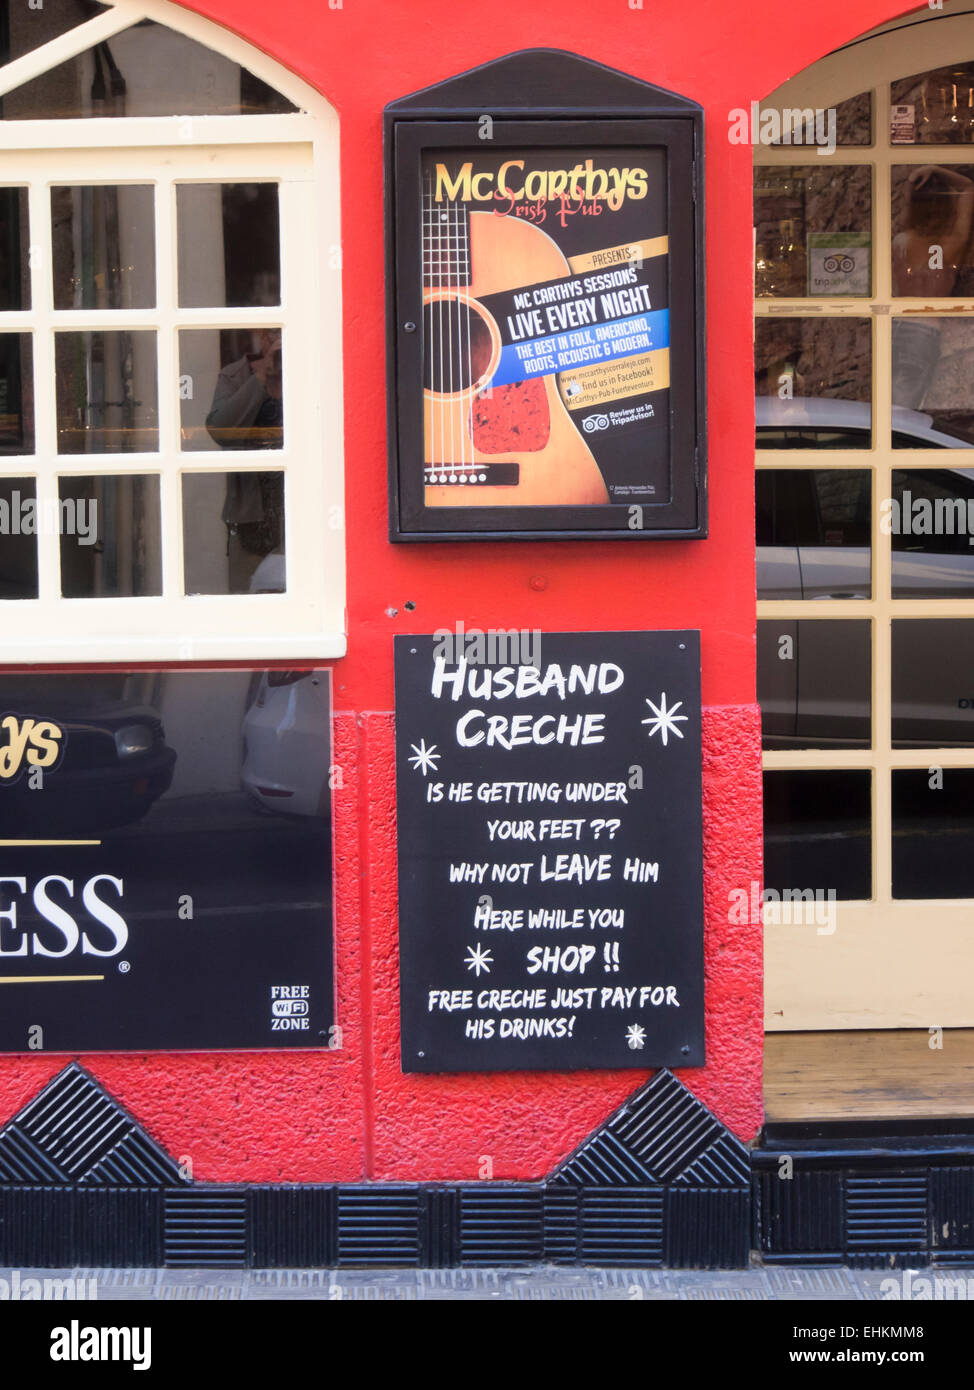 Irish bar in Corralejo Fuerteventura, Canary islands Spain, humorous sign about husbands and shopping - Stock Image